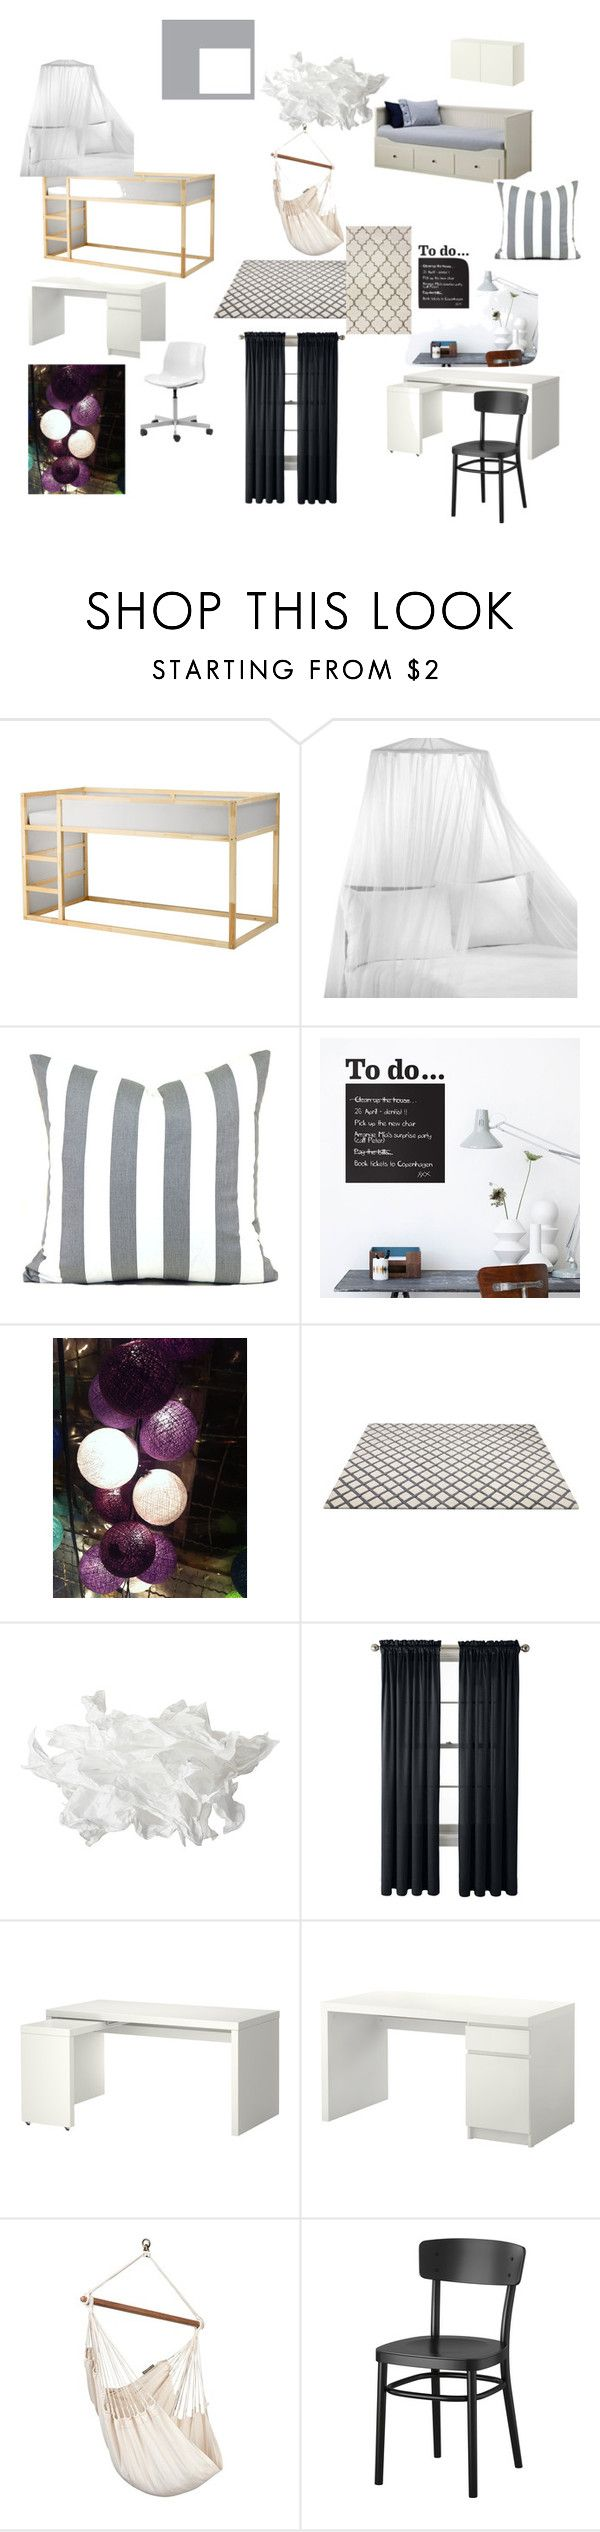 pokoj dziewczynek by magdalena-grycz on Polyvore featuring interior, interiors, interior design, dom, home decor, interior decorating, Home Decorators Collection, ferm LIVING and Royal Velvet